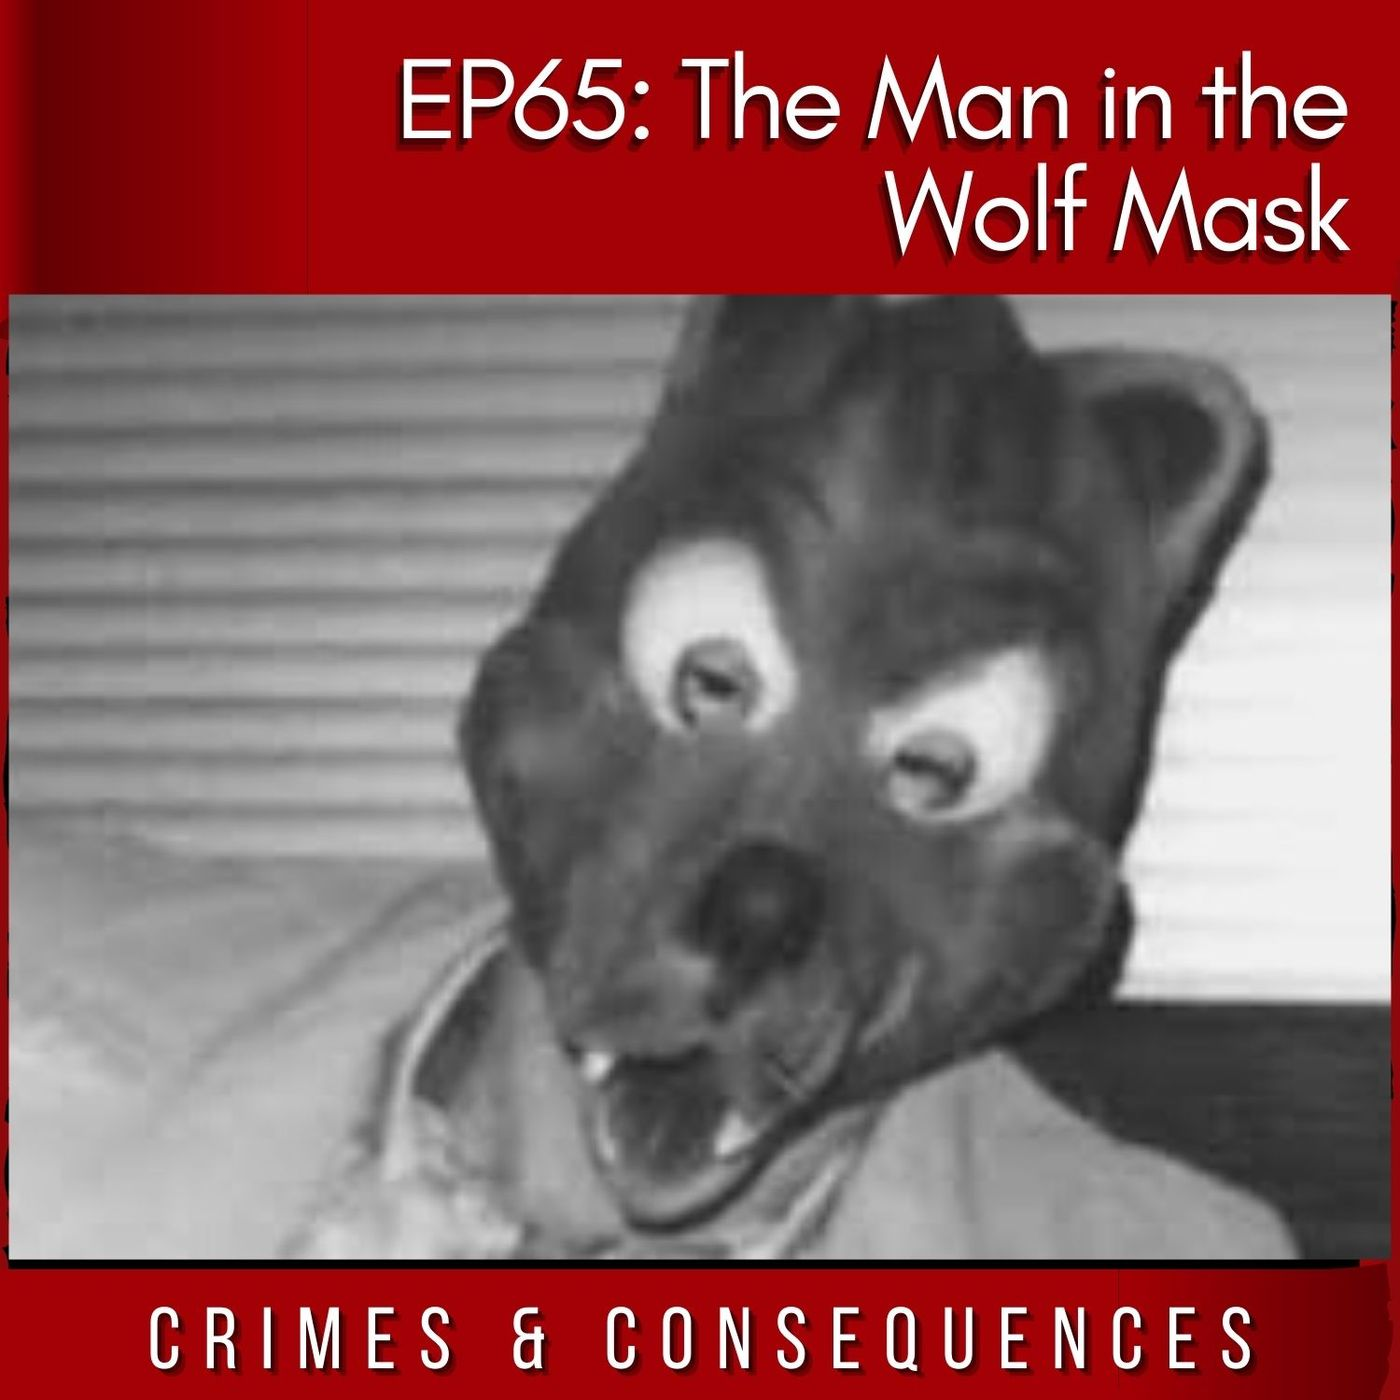 EP65: The Man in the Wolf Mask